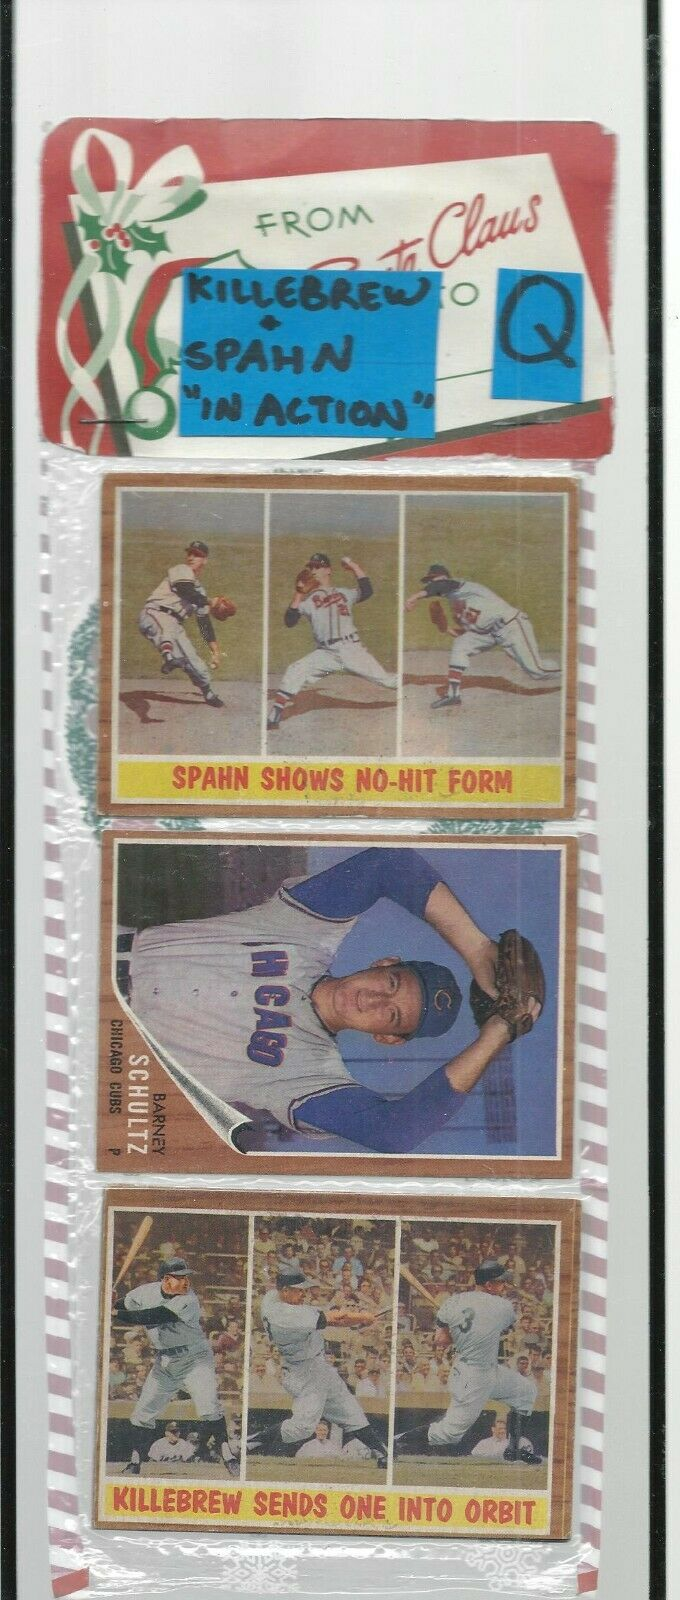 1962 TOPPS RACK PACK FEATURING SPAHN SHOWS NO HIT, KILLEBREW SENDS ONE IN ORBIT - $125.09